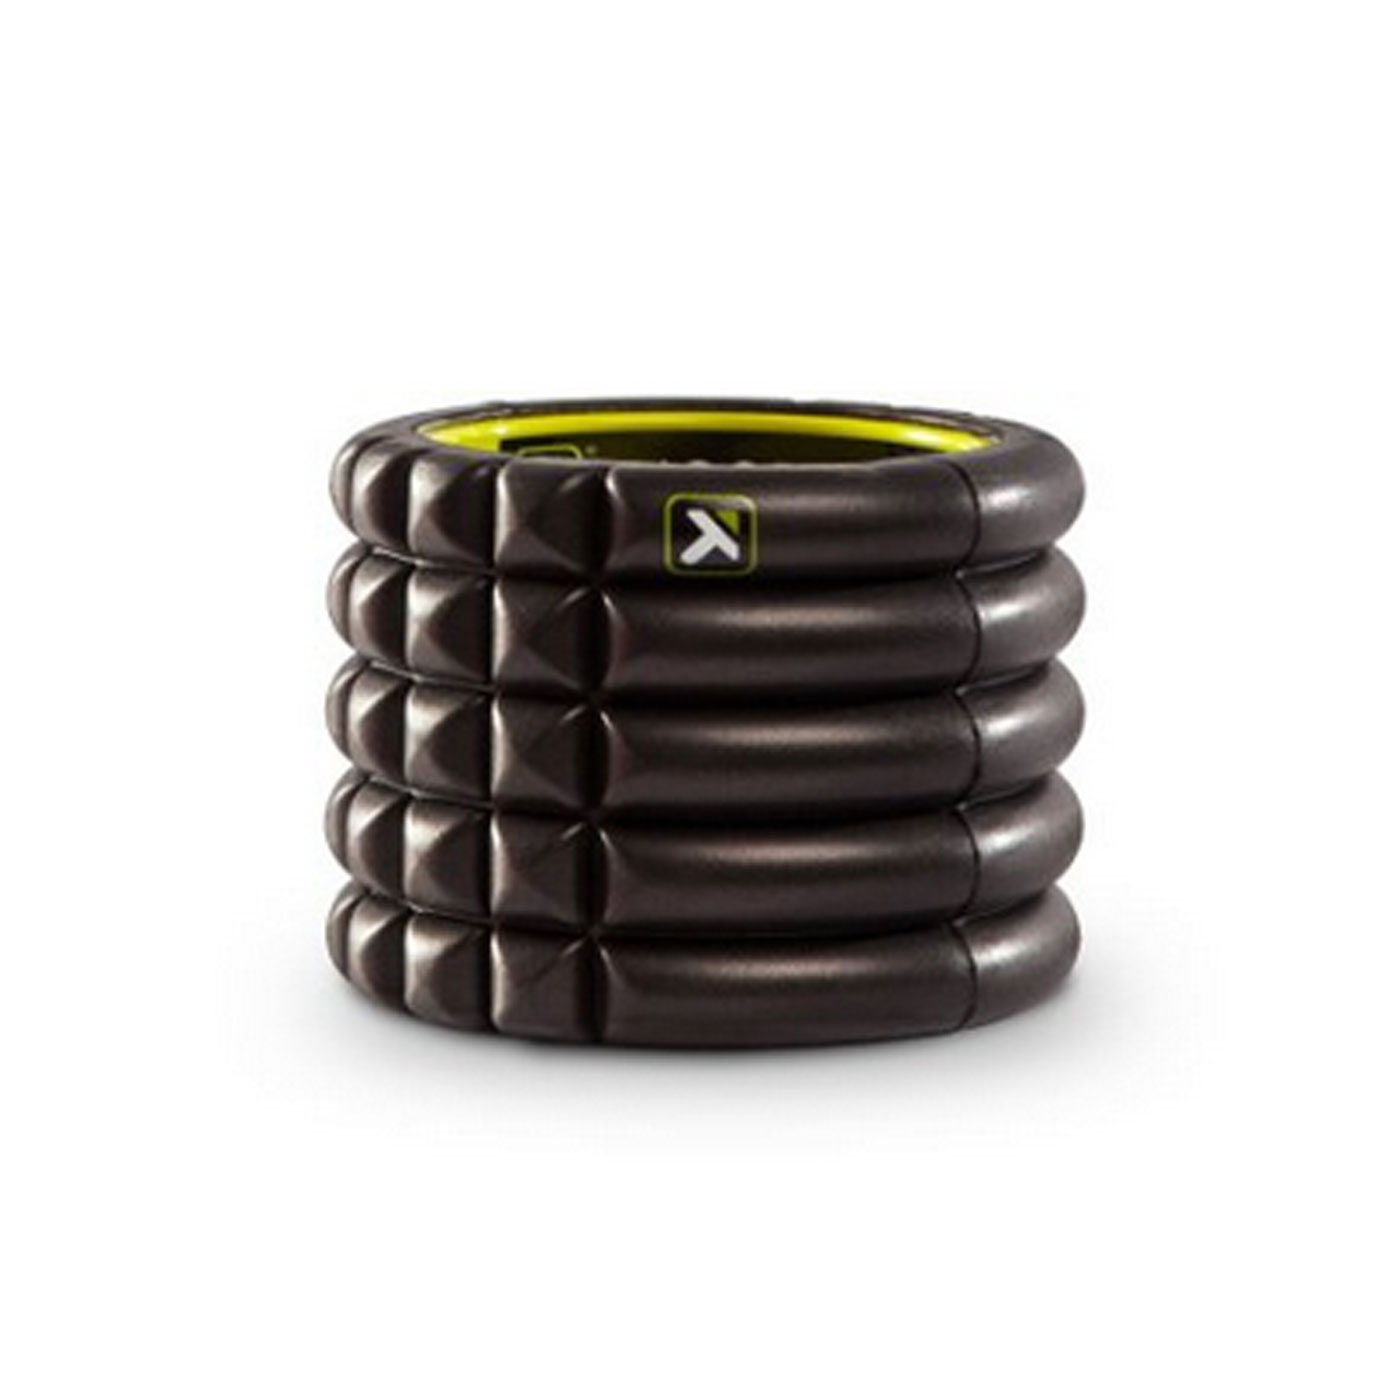 TP-Mini-Grid-Foam-Roller.jpg